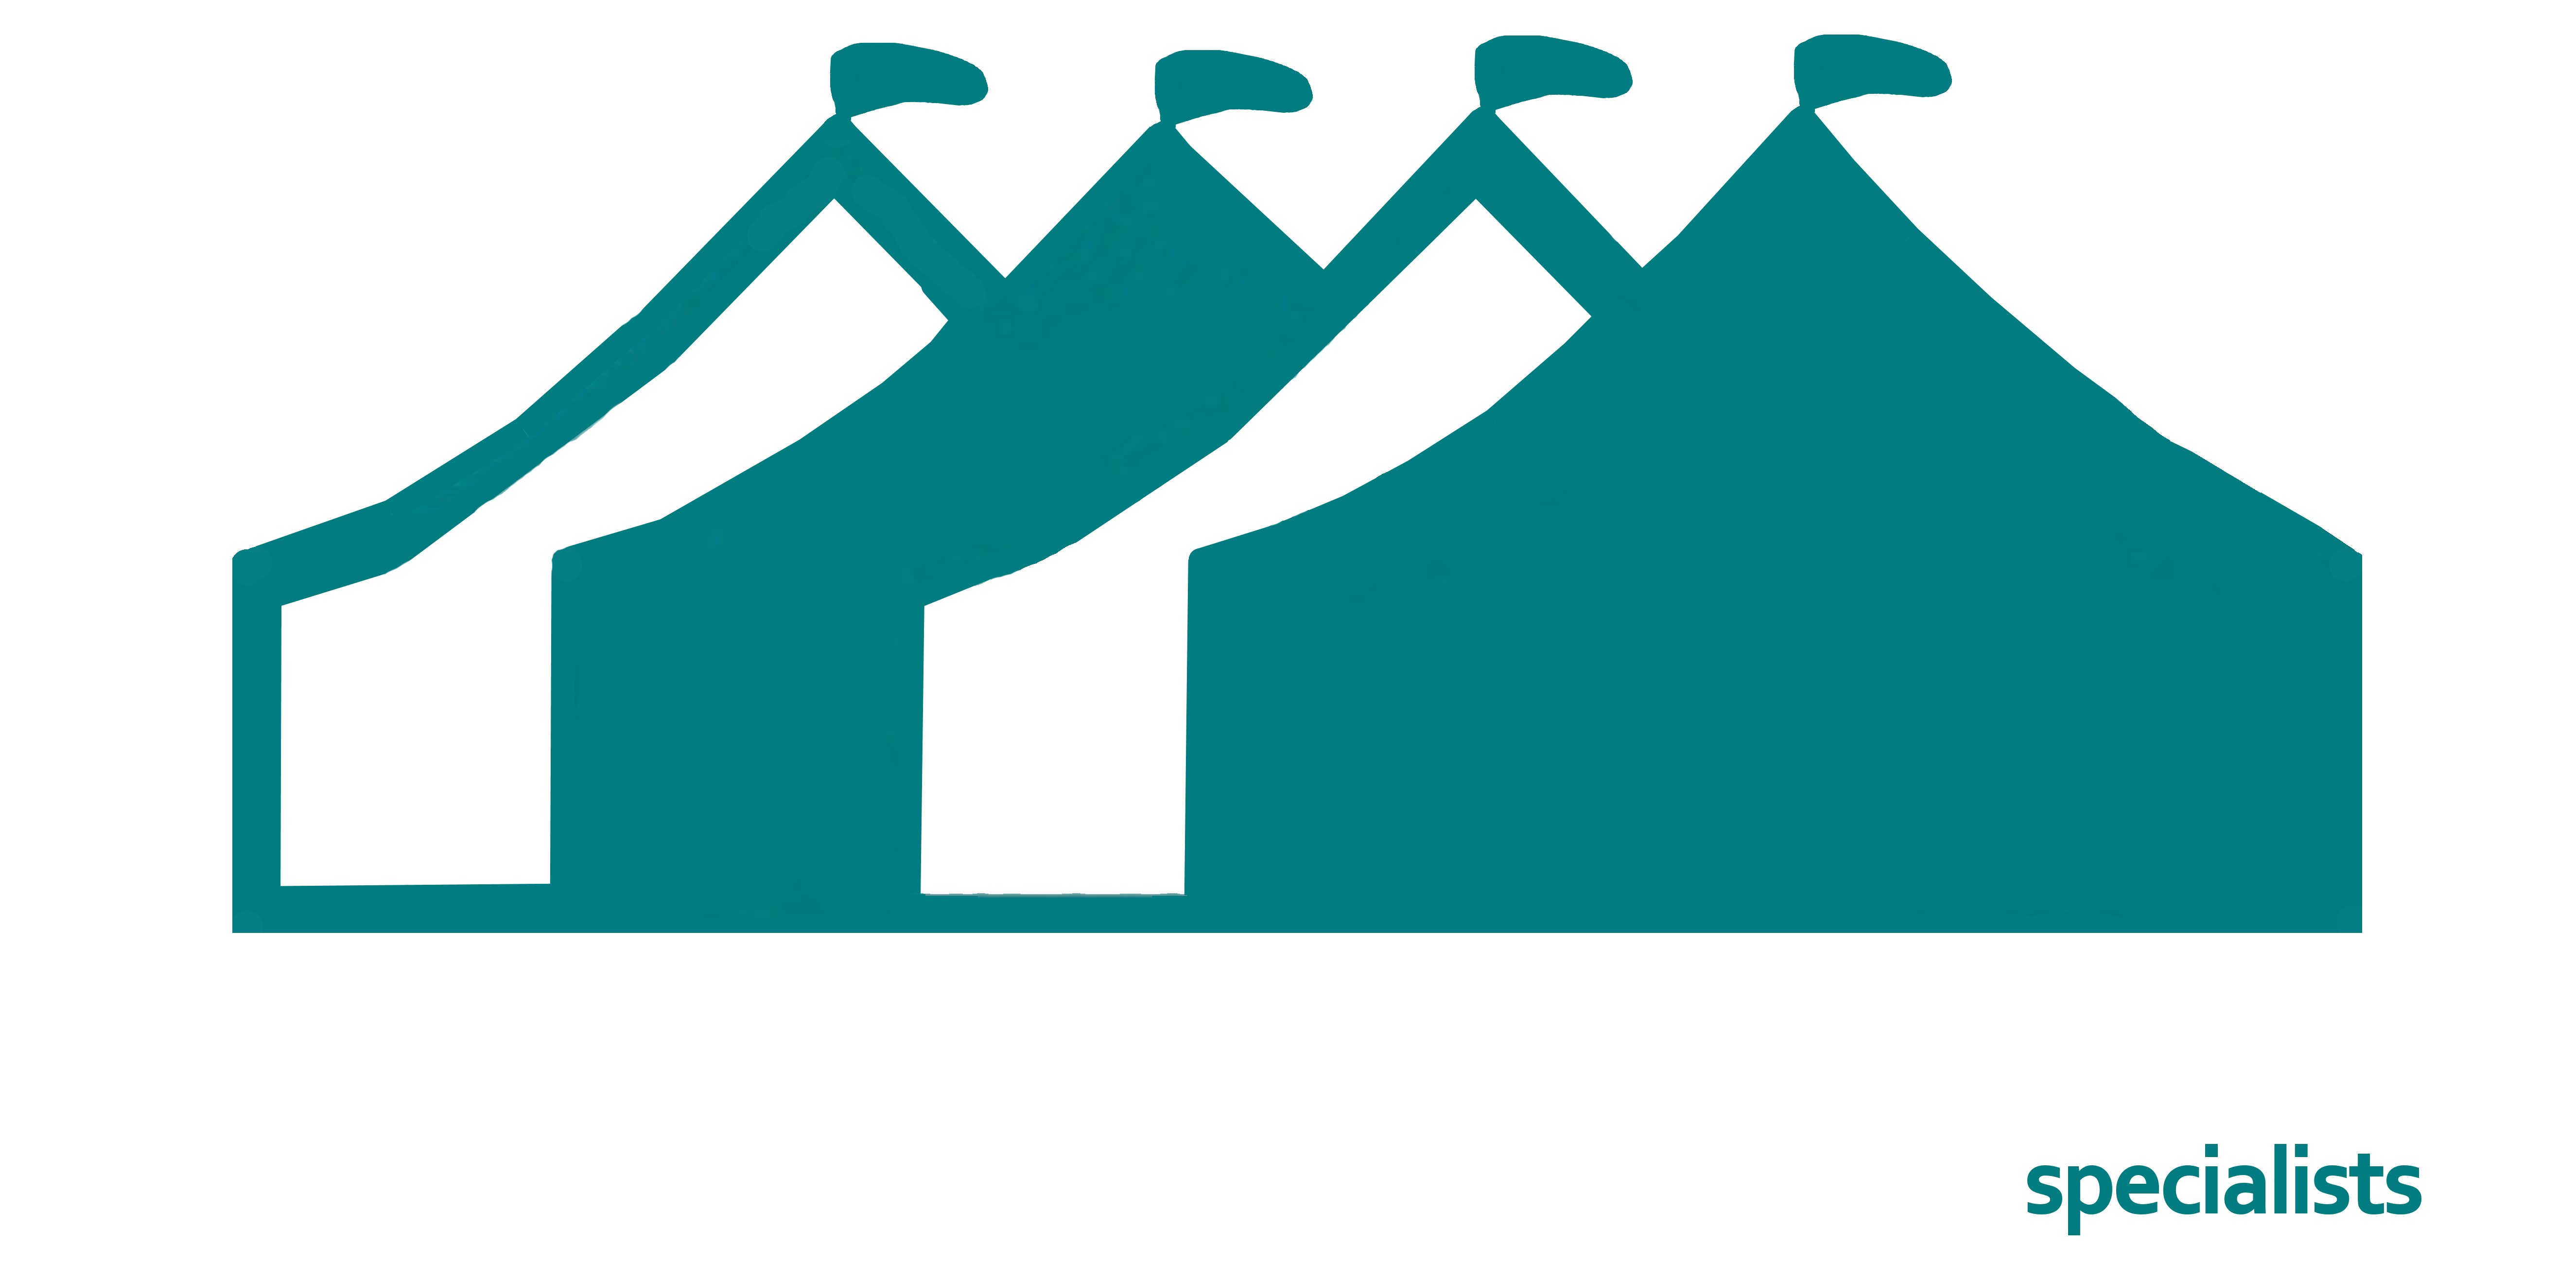 Rentals events all around. Clipart tent event tent